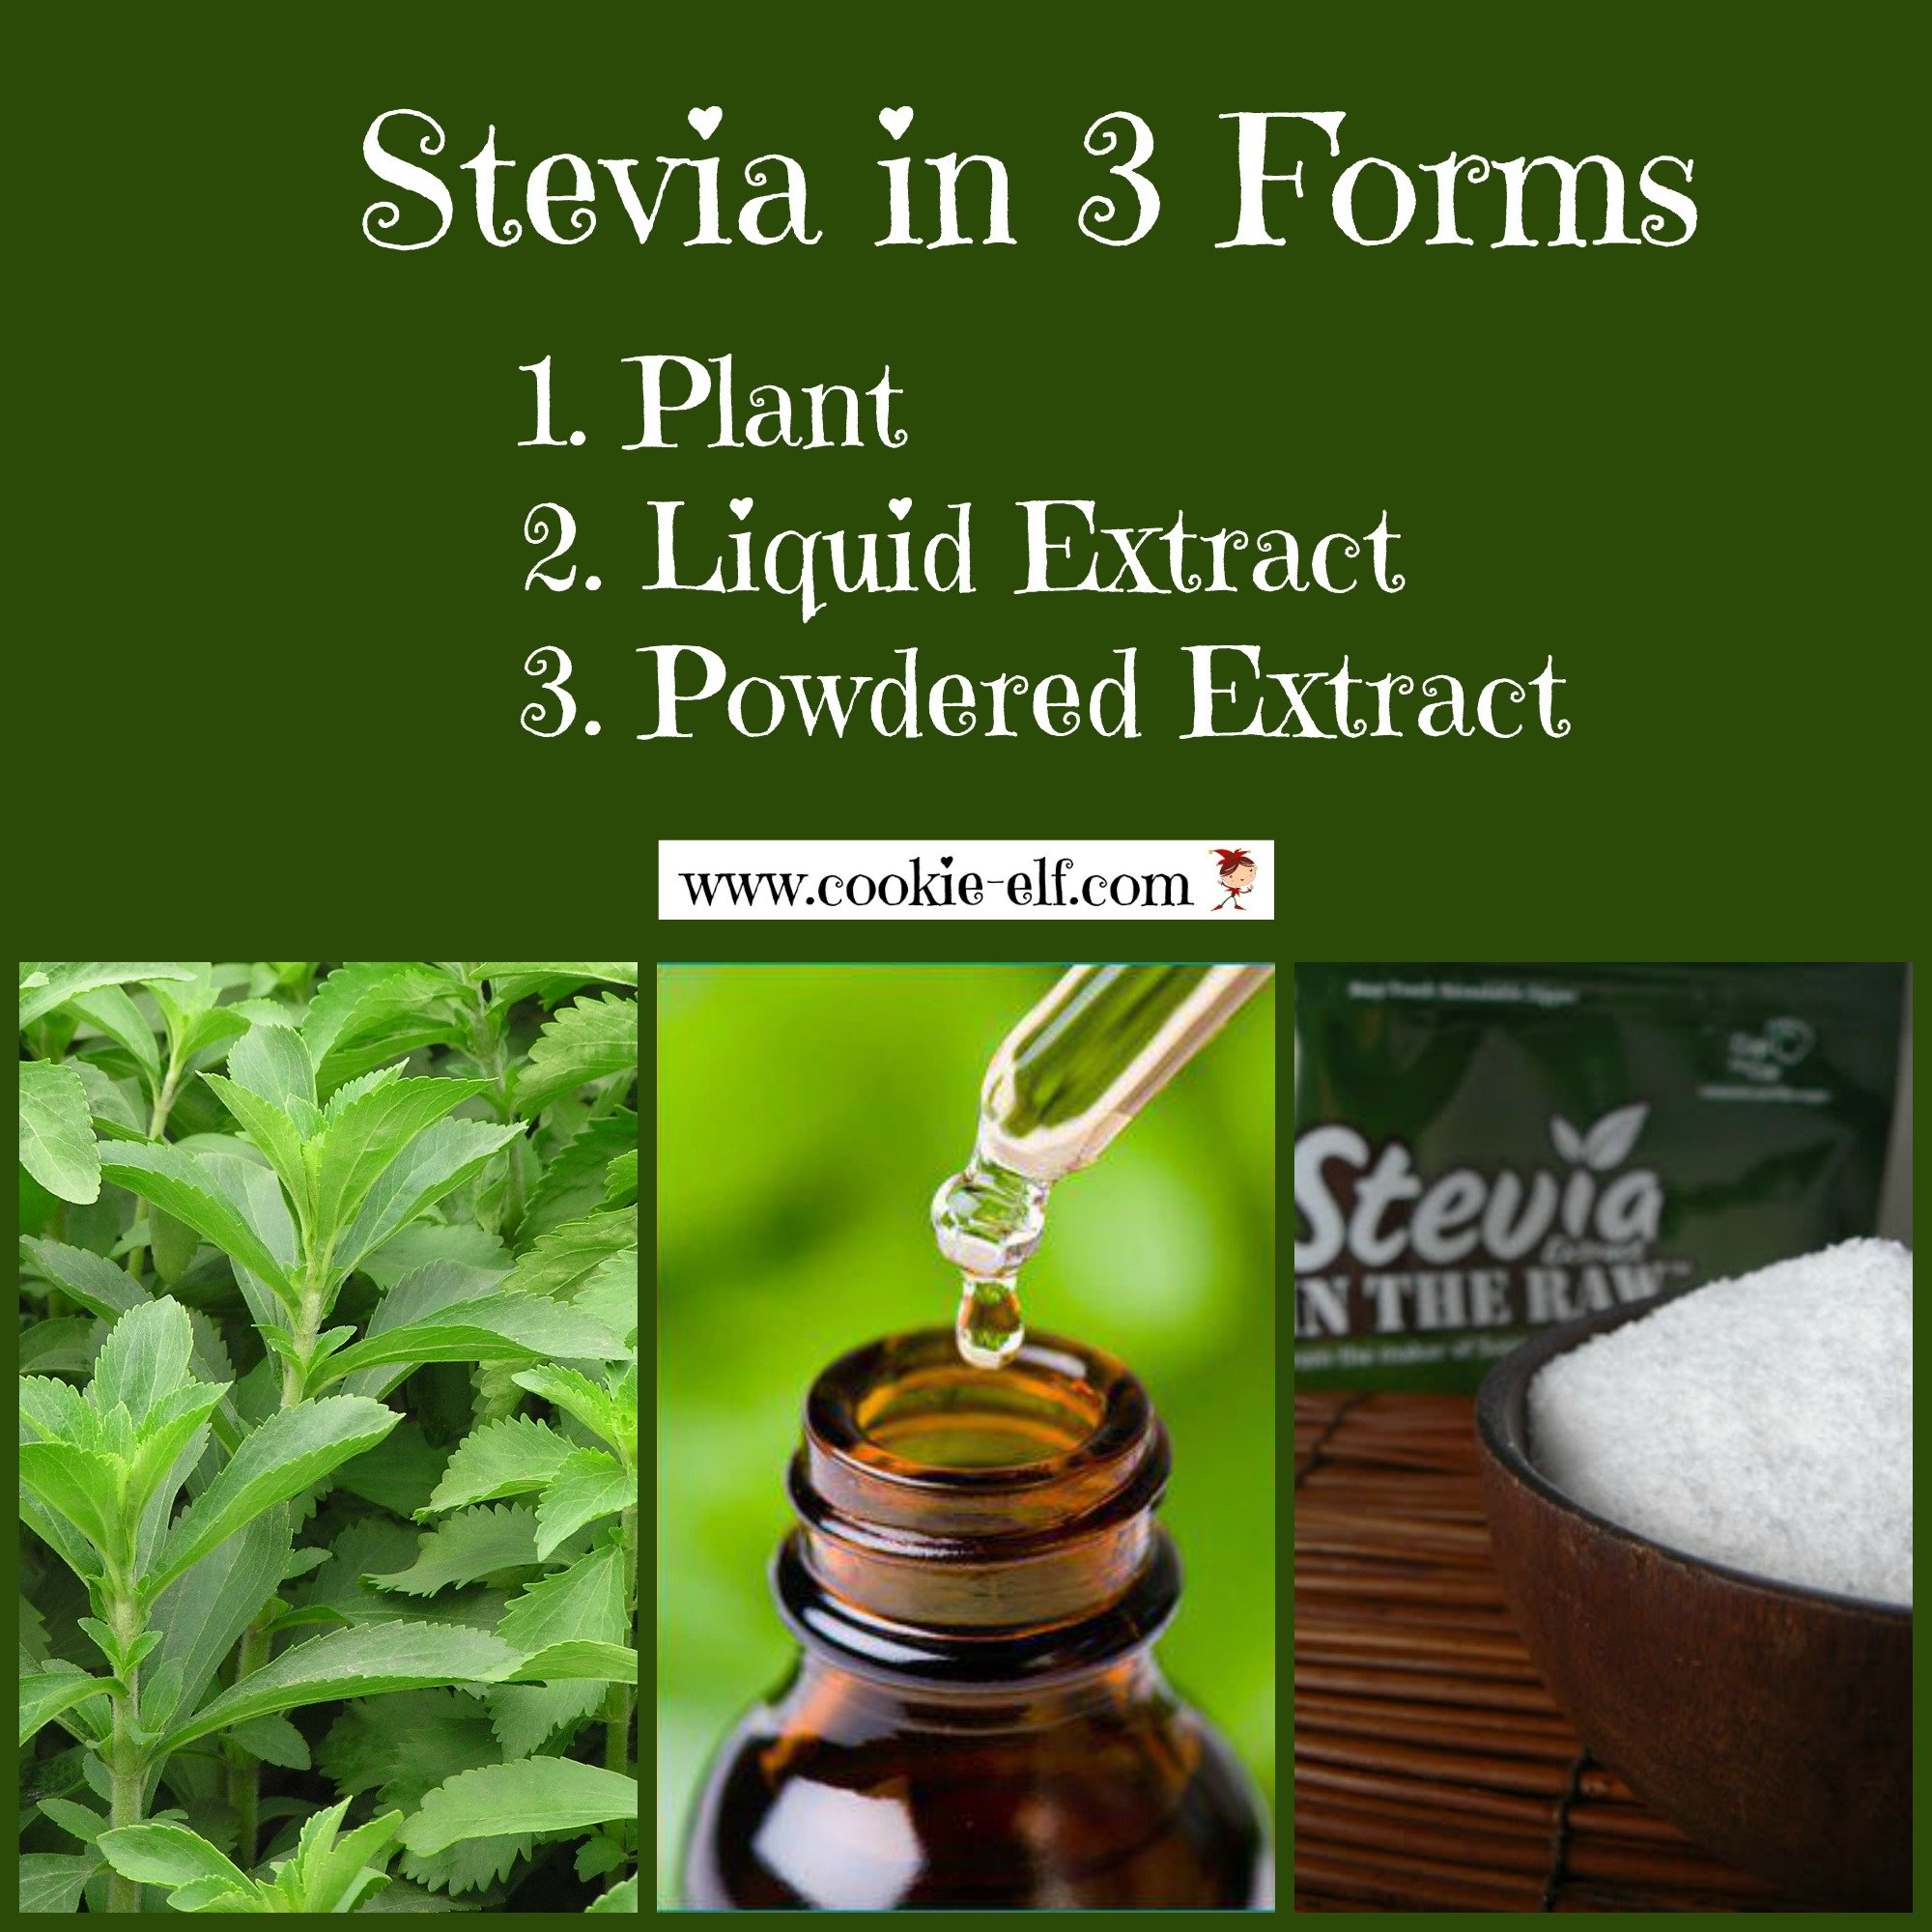 Stevia in 3 forms from The Cookie Elf